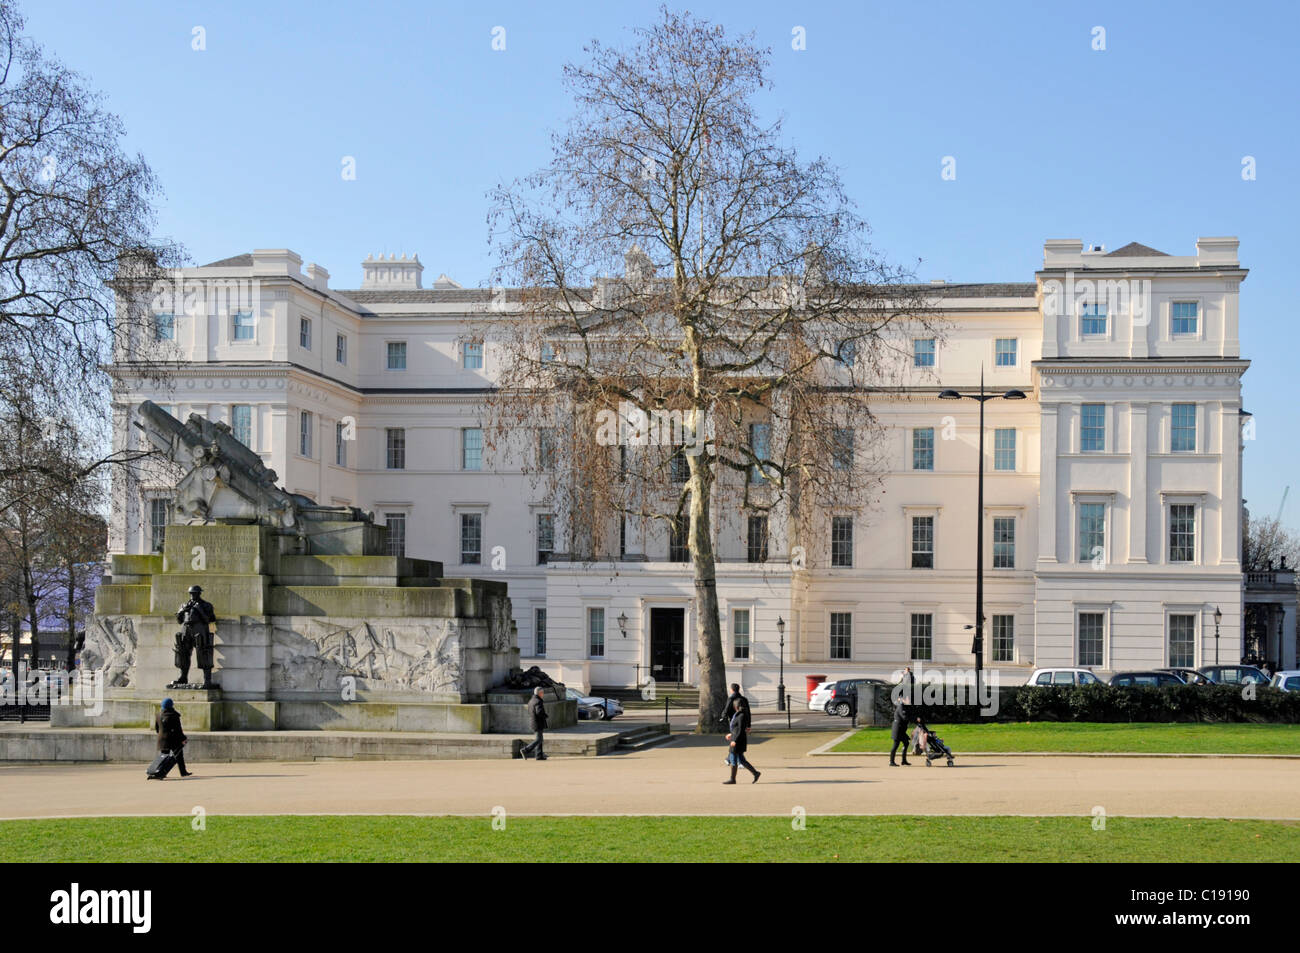 Exterior Neoclassical  Lanesborough Hotel 5 stars expensive luxury hotel with Royal Artillery war memorial winter - Stock Image